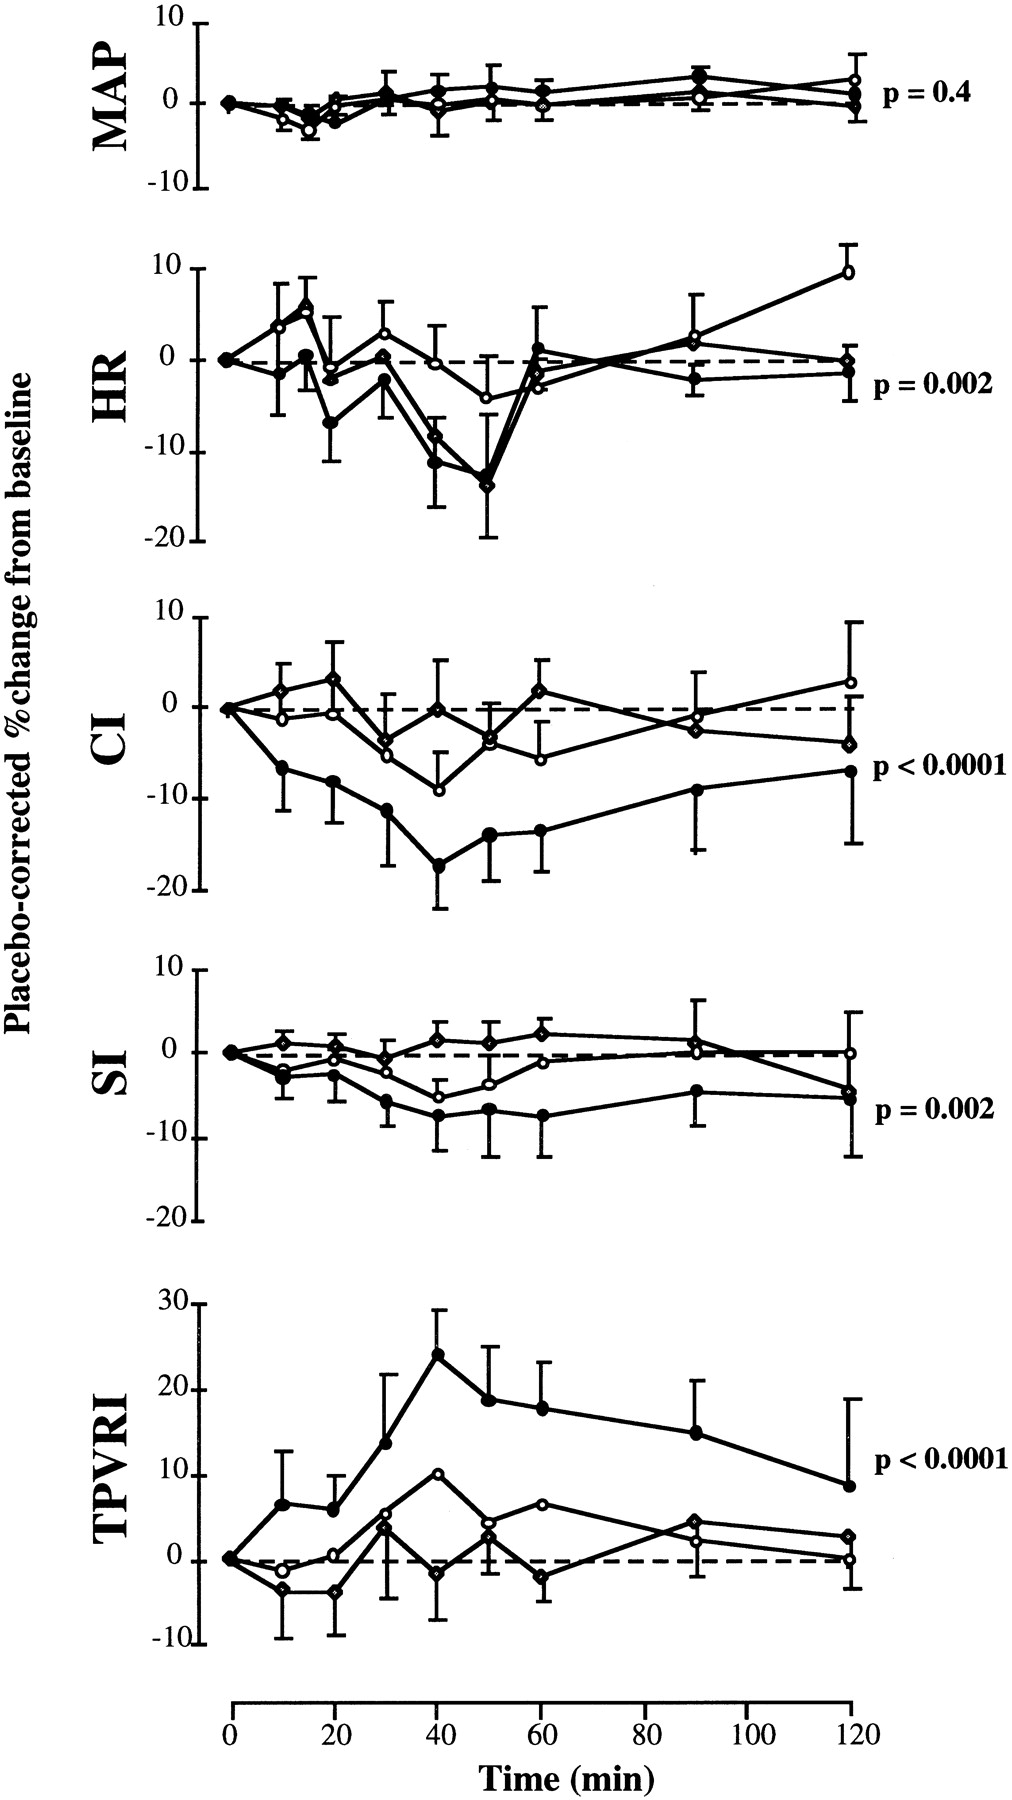 Systemic Blockade of the Endothelin-B Receptor Increases Peripheral on